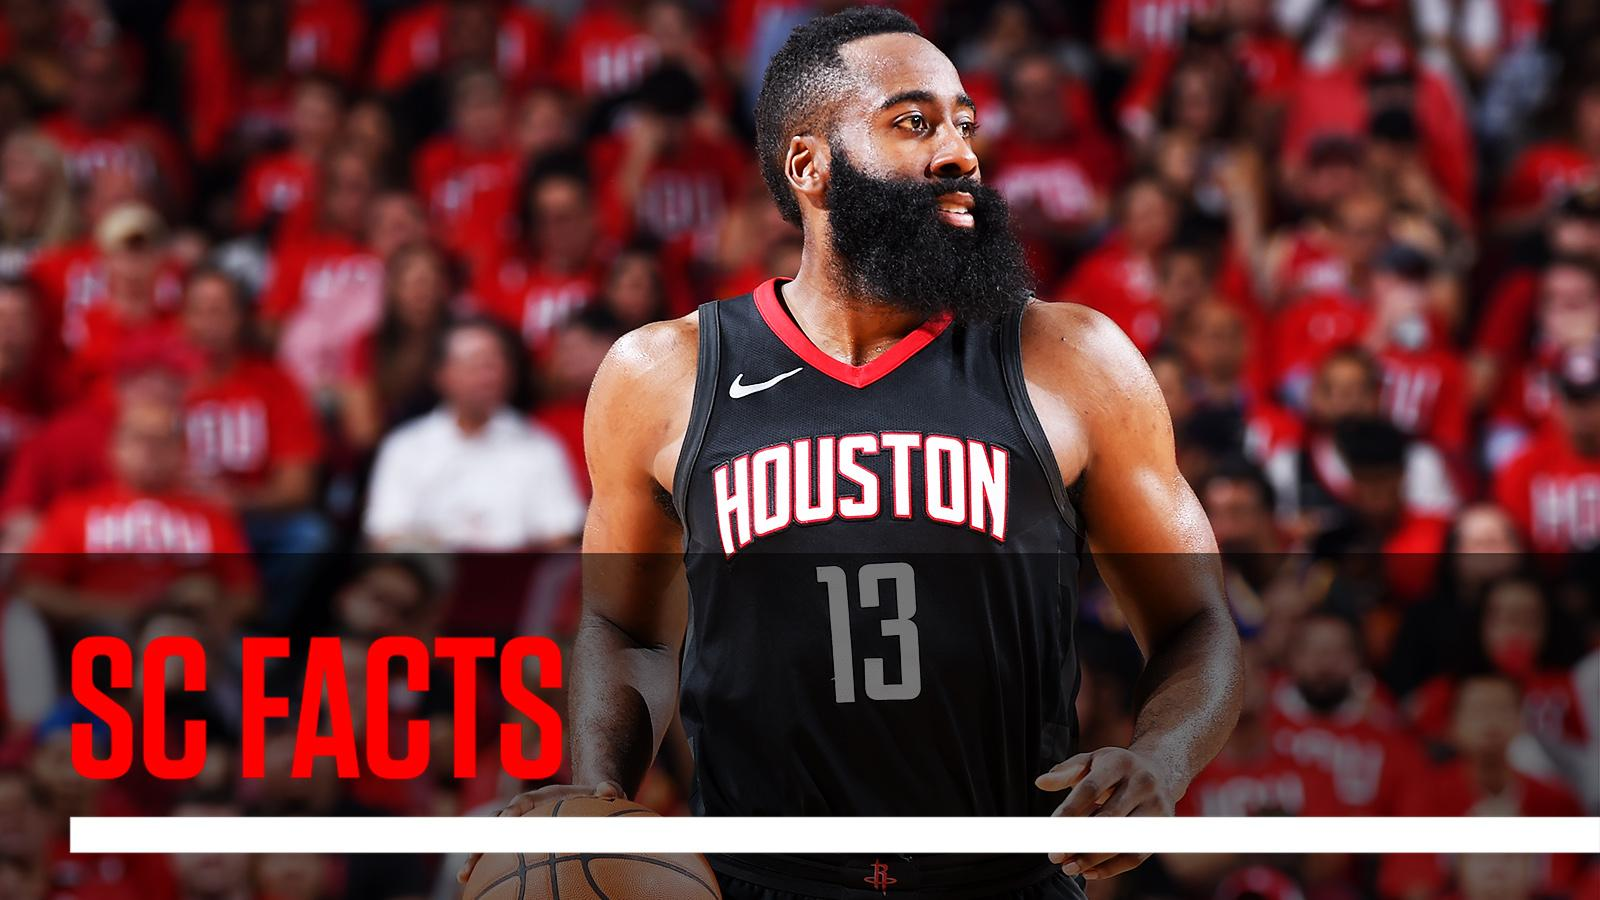 James Harden is the 1st player in NBA history to score 40+ in three straight Game 1s to open a postseason. #SCFacts https://t.co/R3Fq2GuCmm